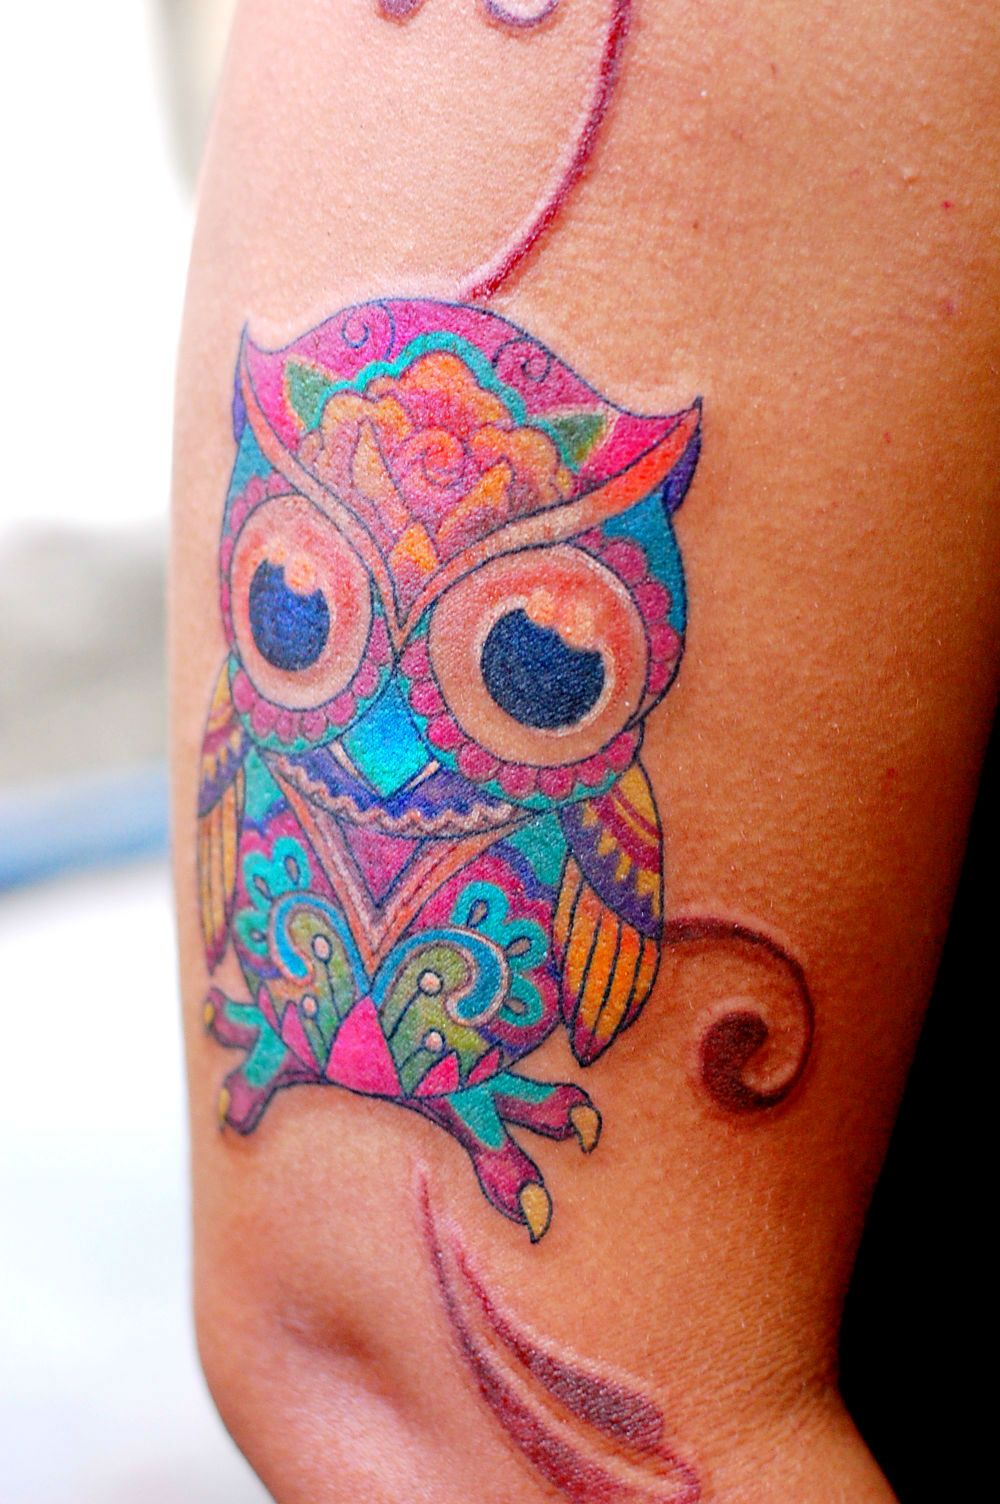 Owl Tattoo Colorful Chouette Tatouage Tatouage Tatouage Oiseau